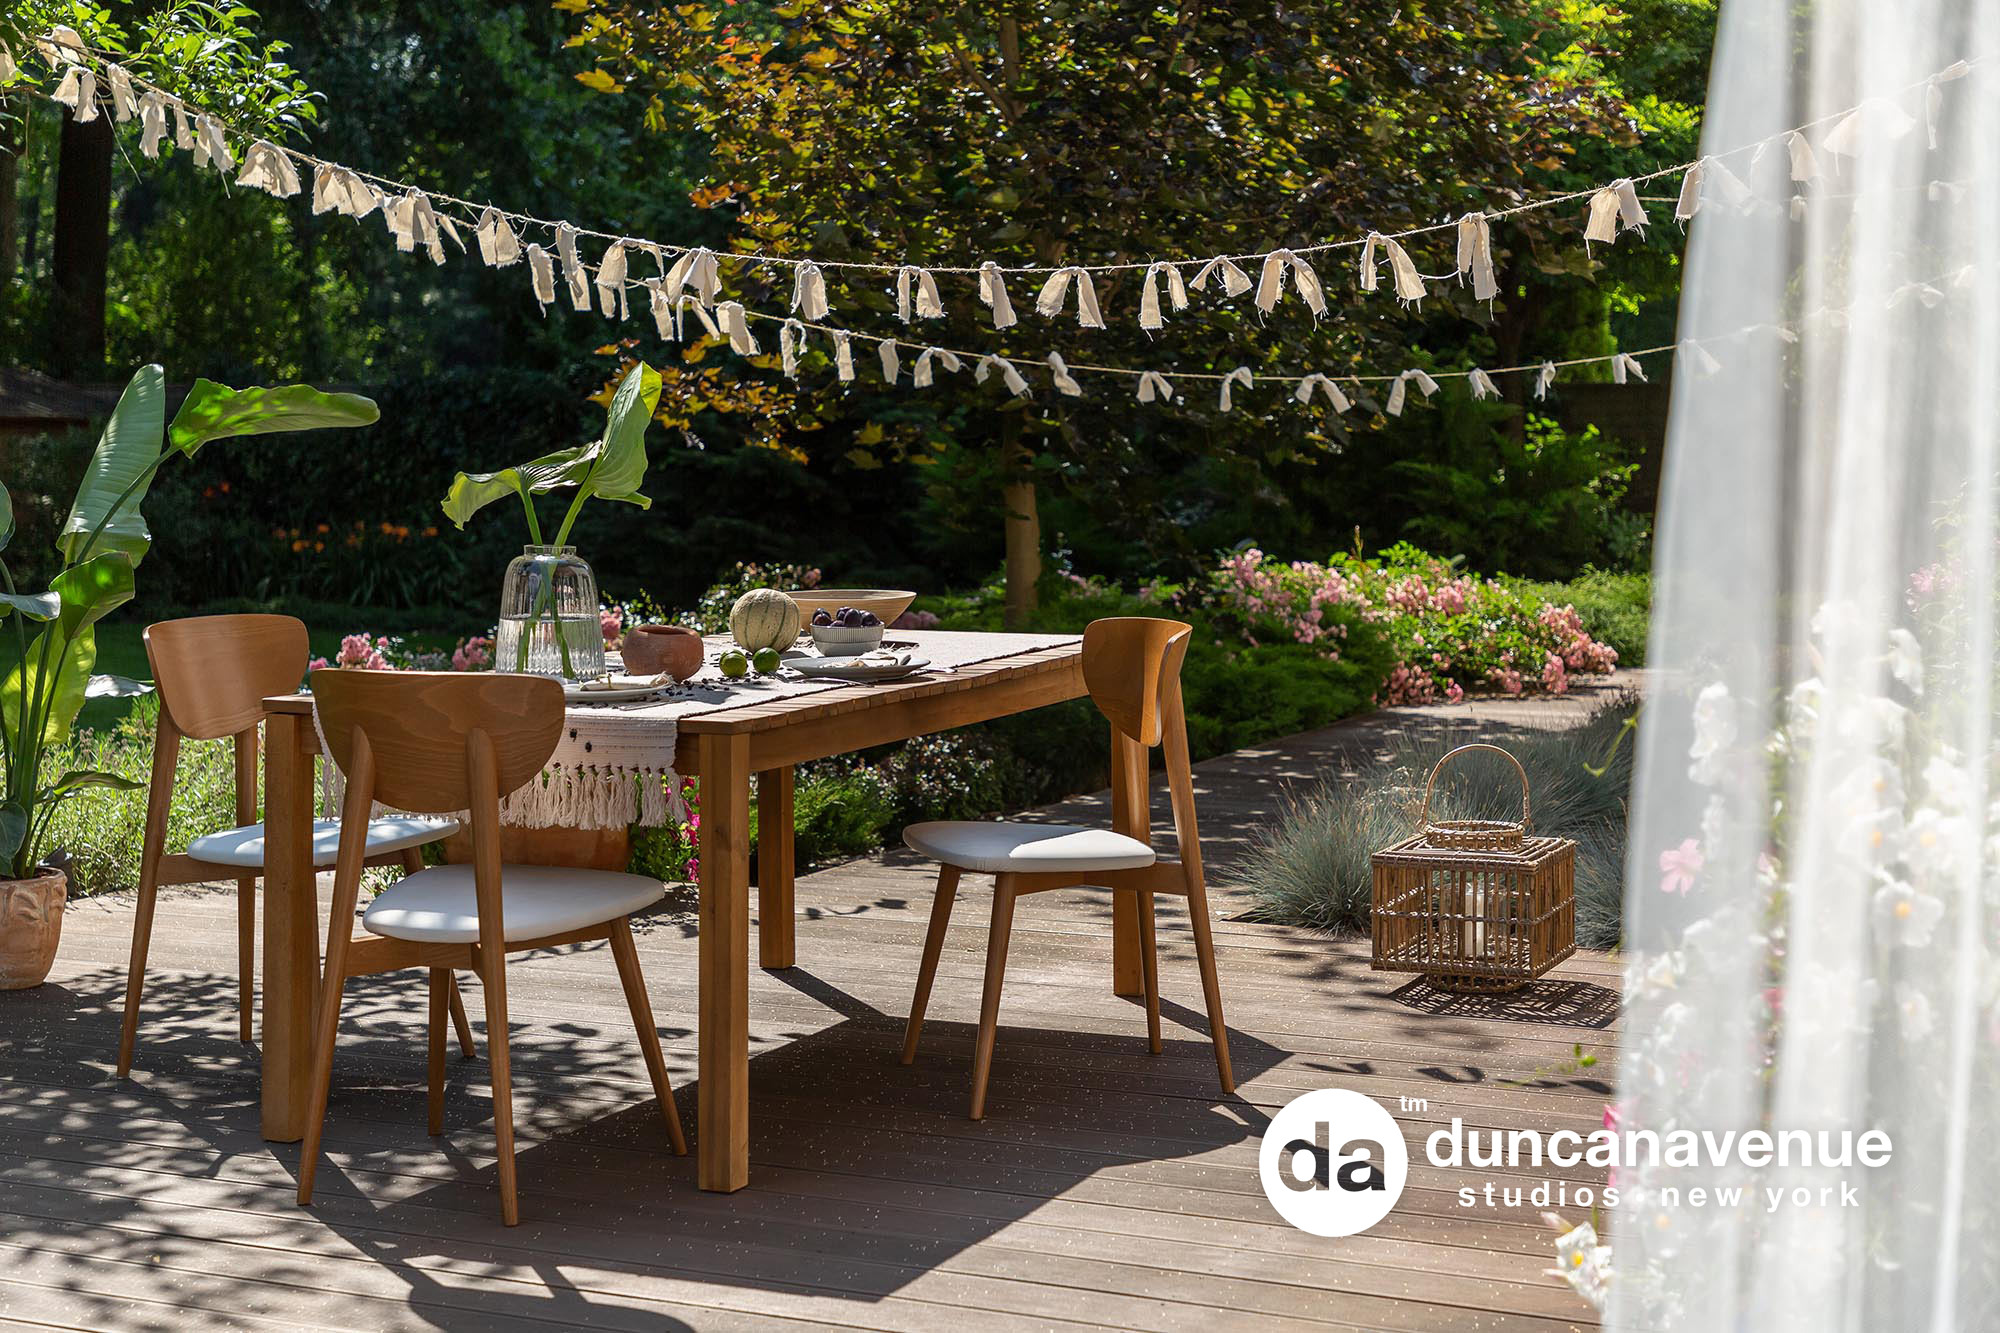 Create a Backyard Oasis in Your Hudson Valley Home